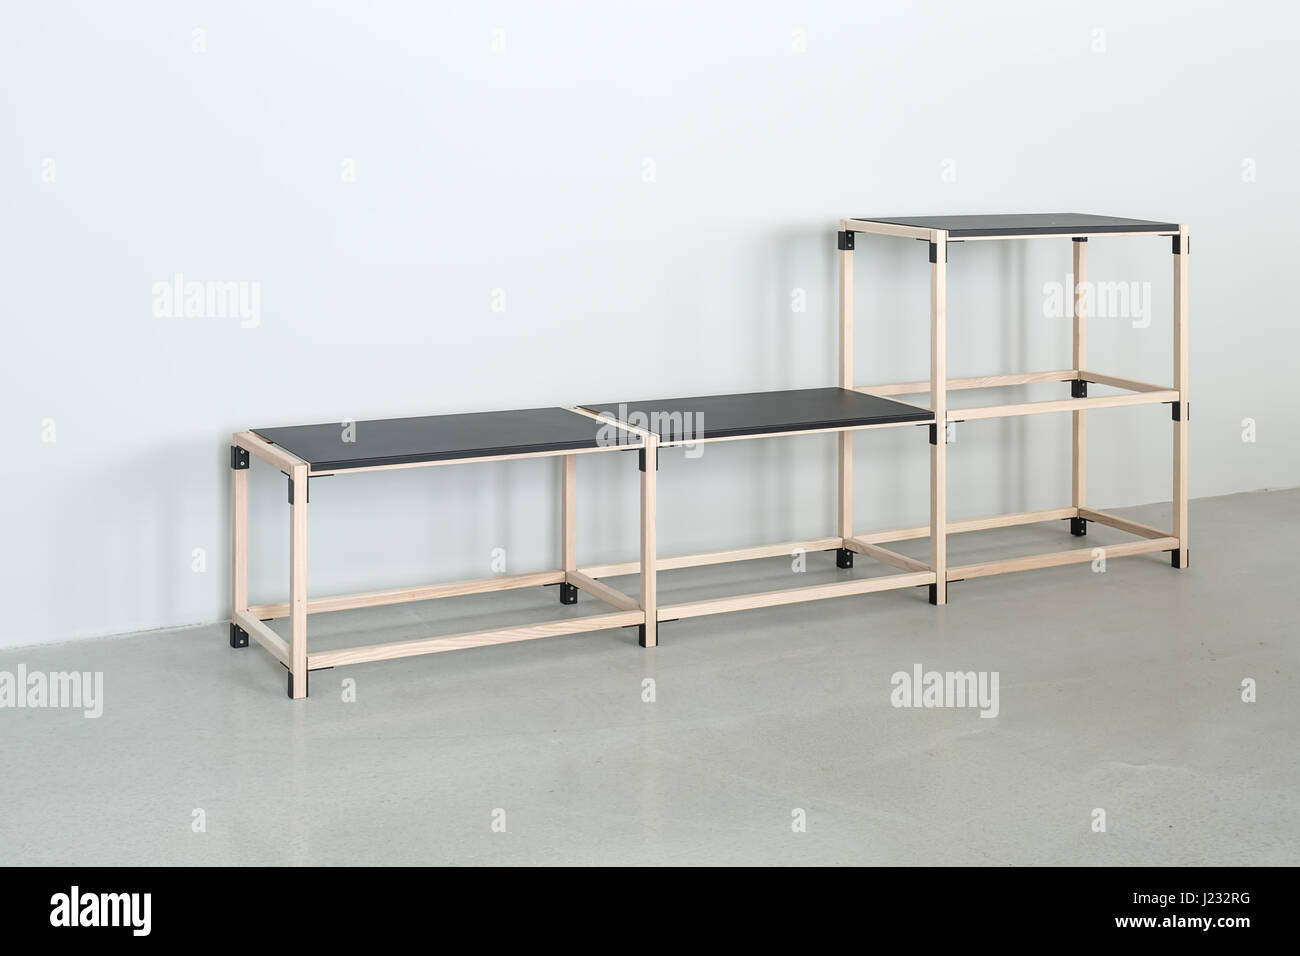 Wooden construct with black tabletops - Stock Image